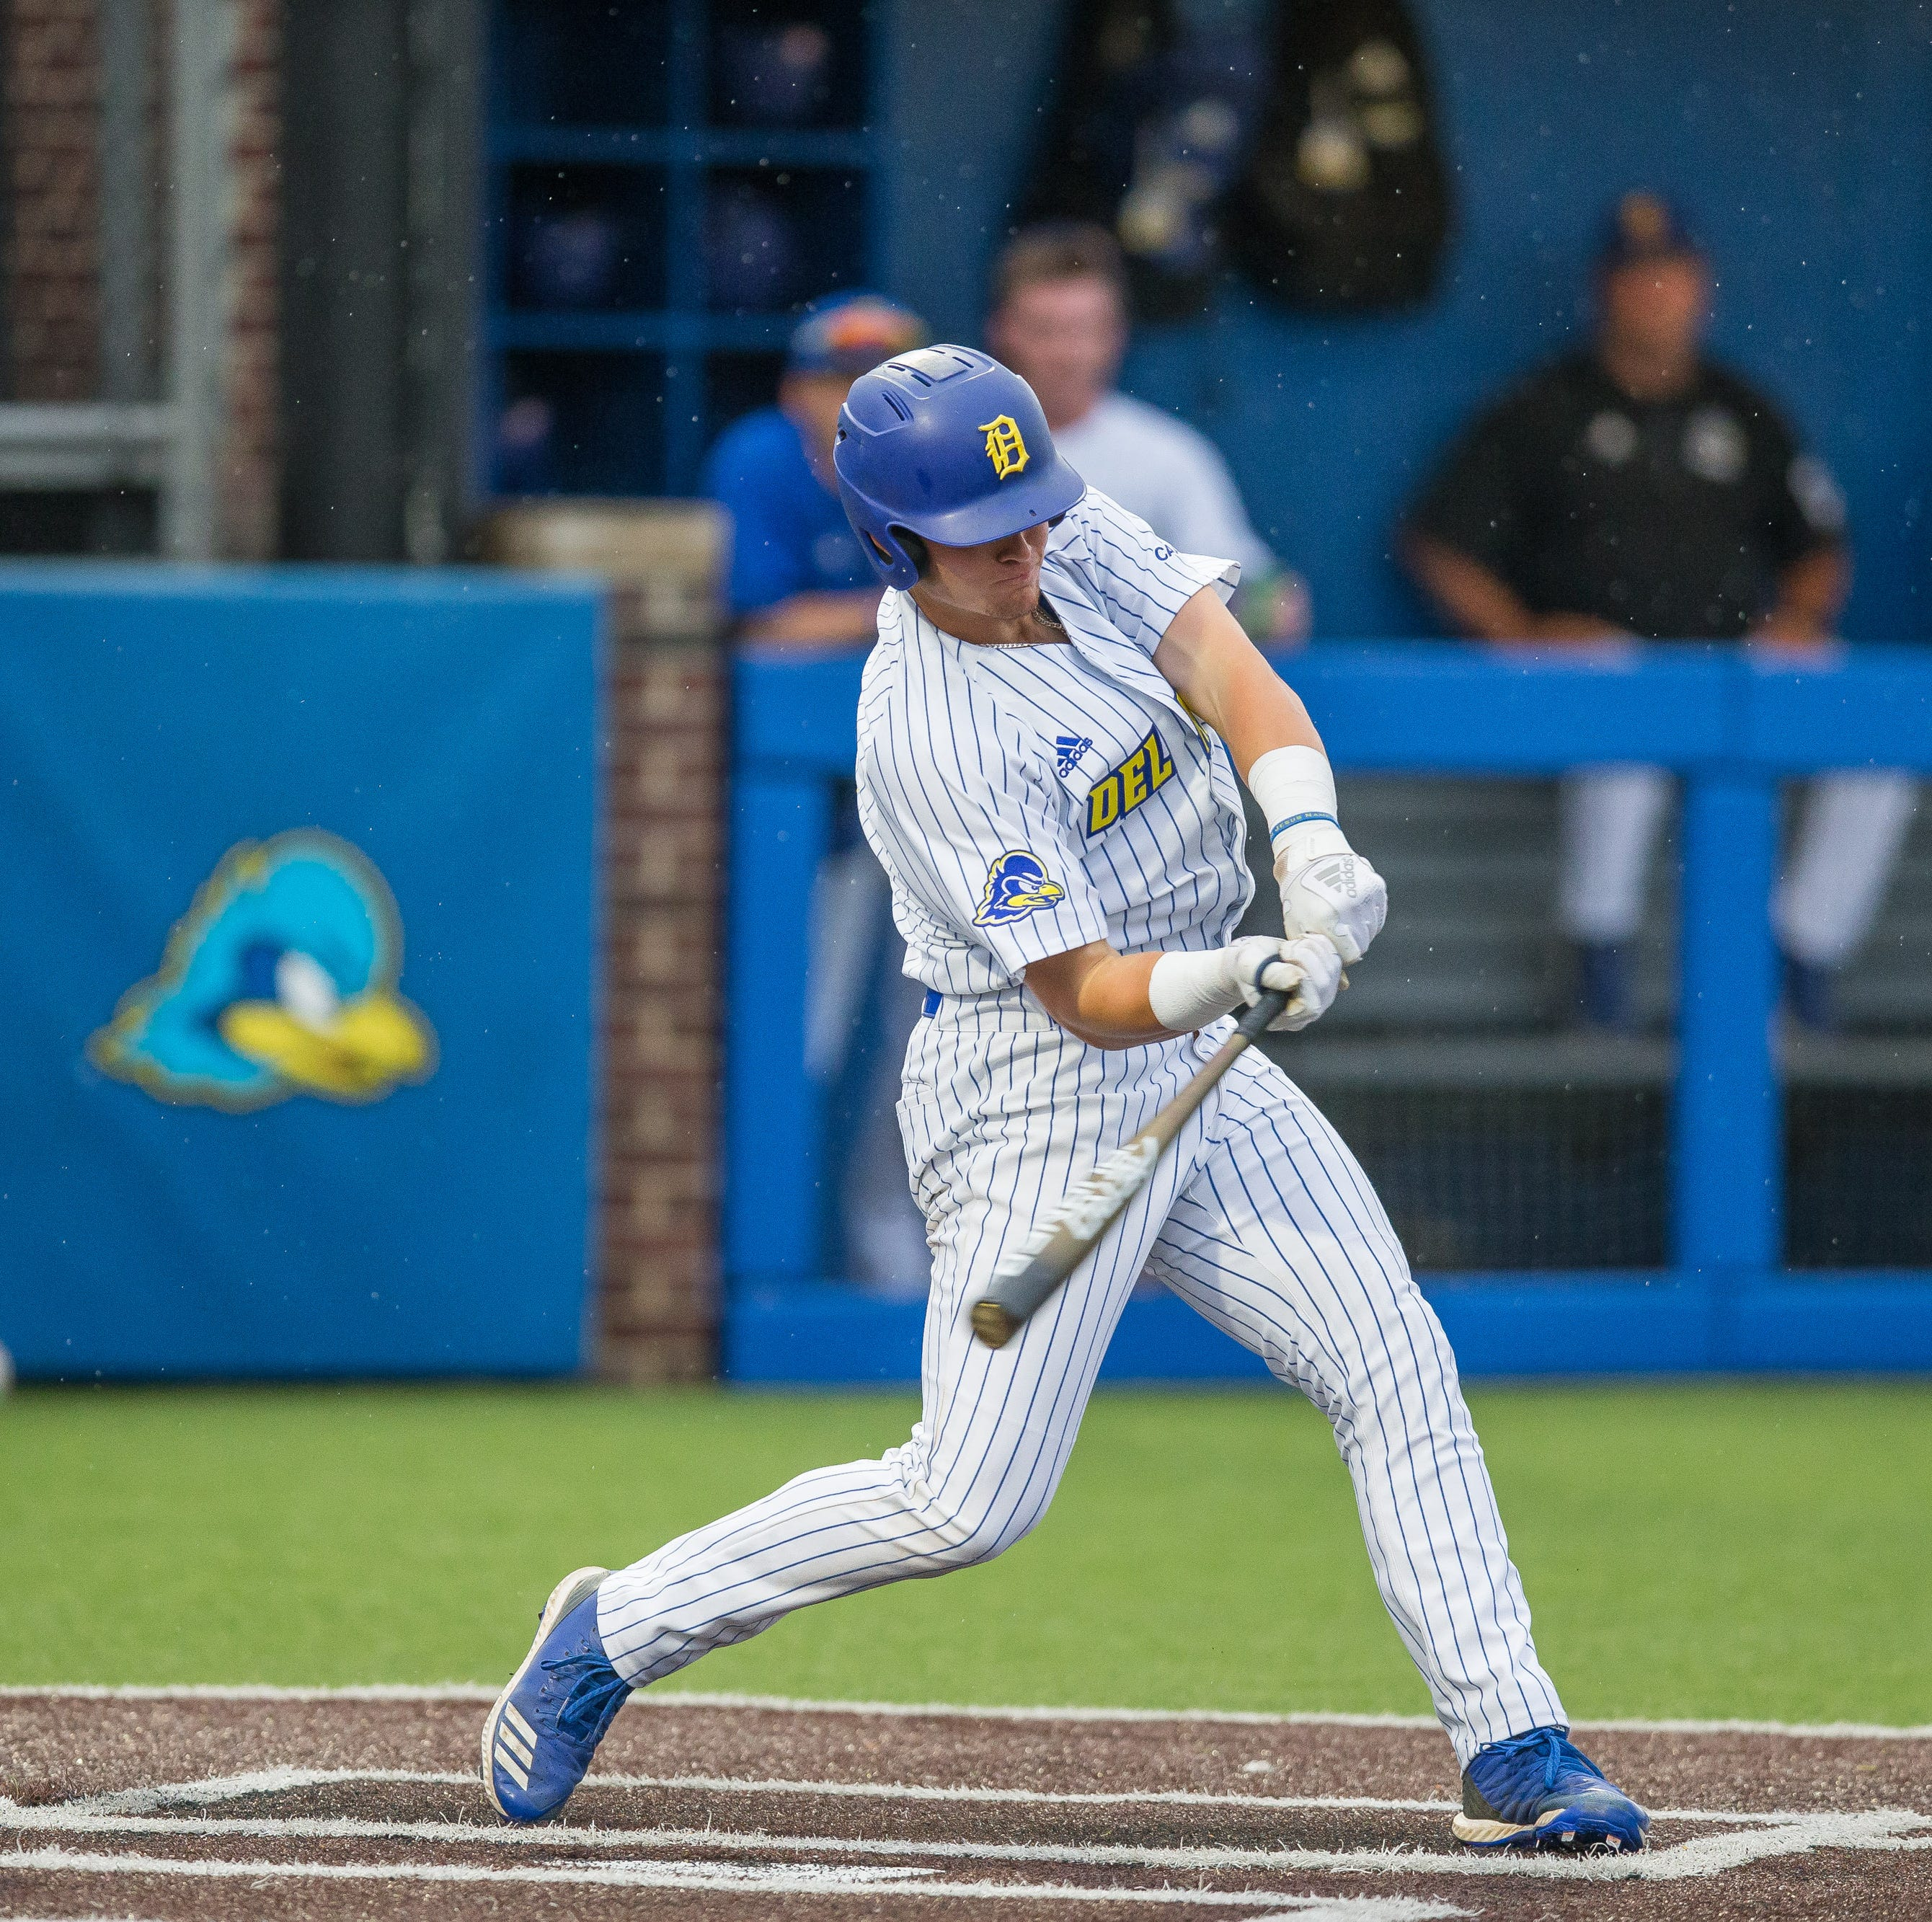 Strong work ethic leads Cedar Crest grad Joseph Carpenter to college baseball success